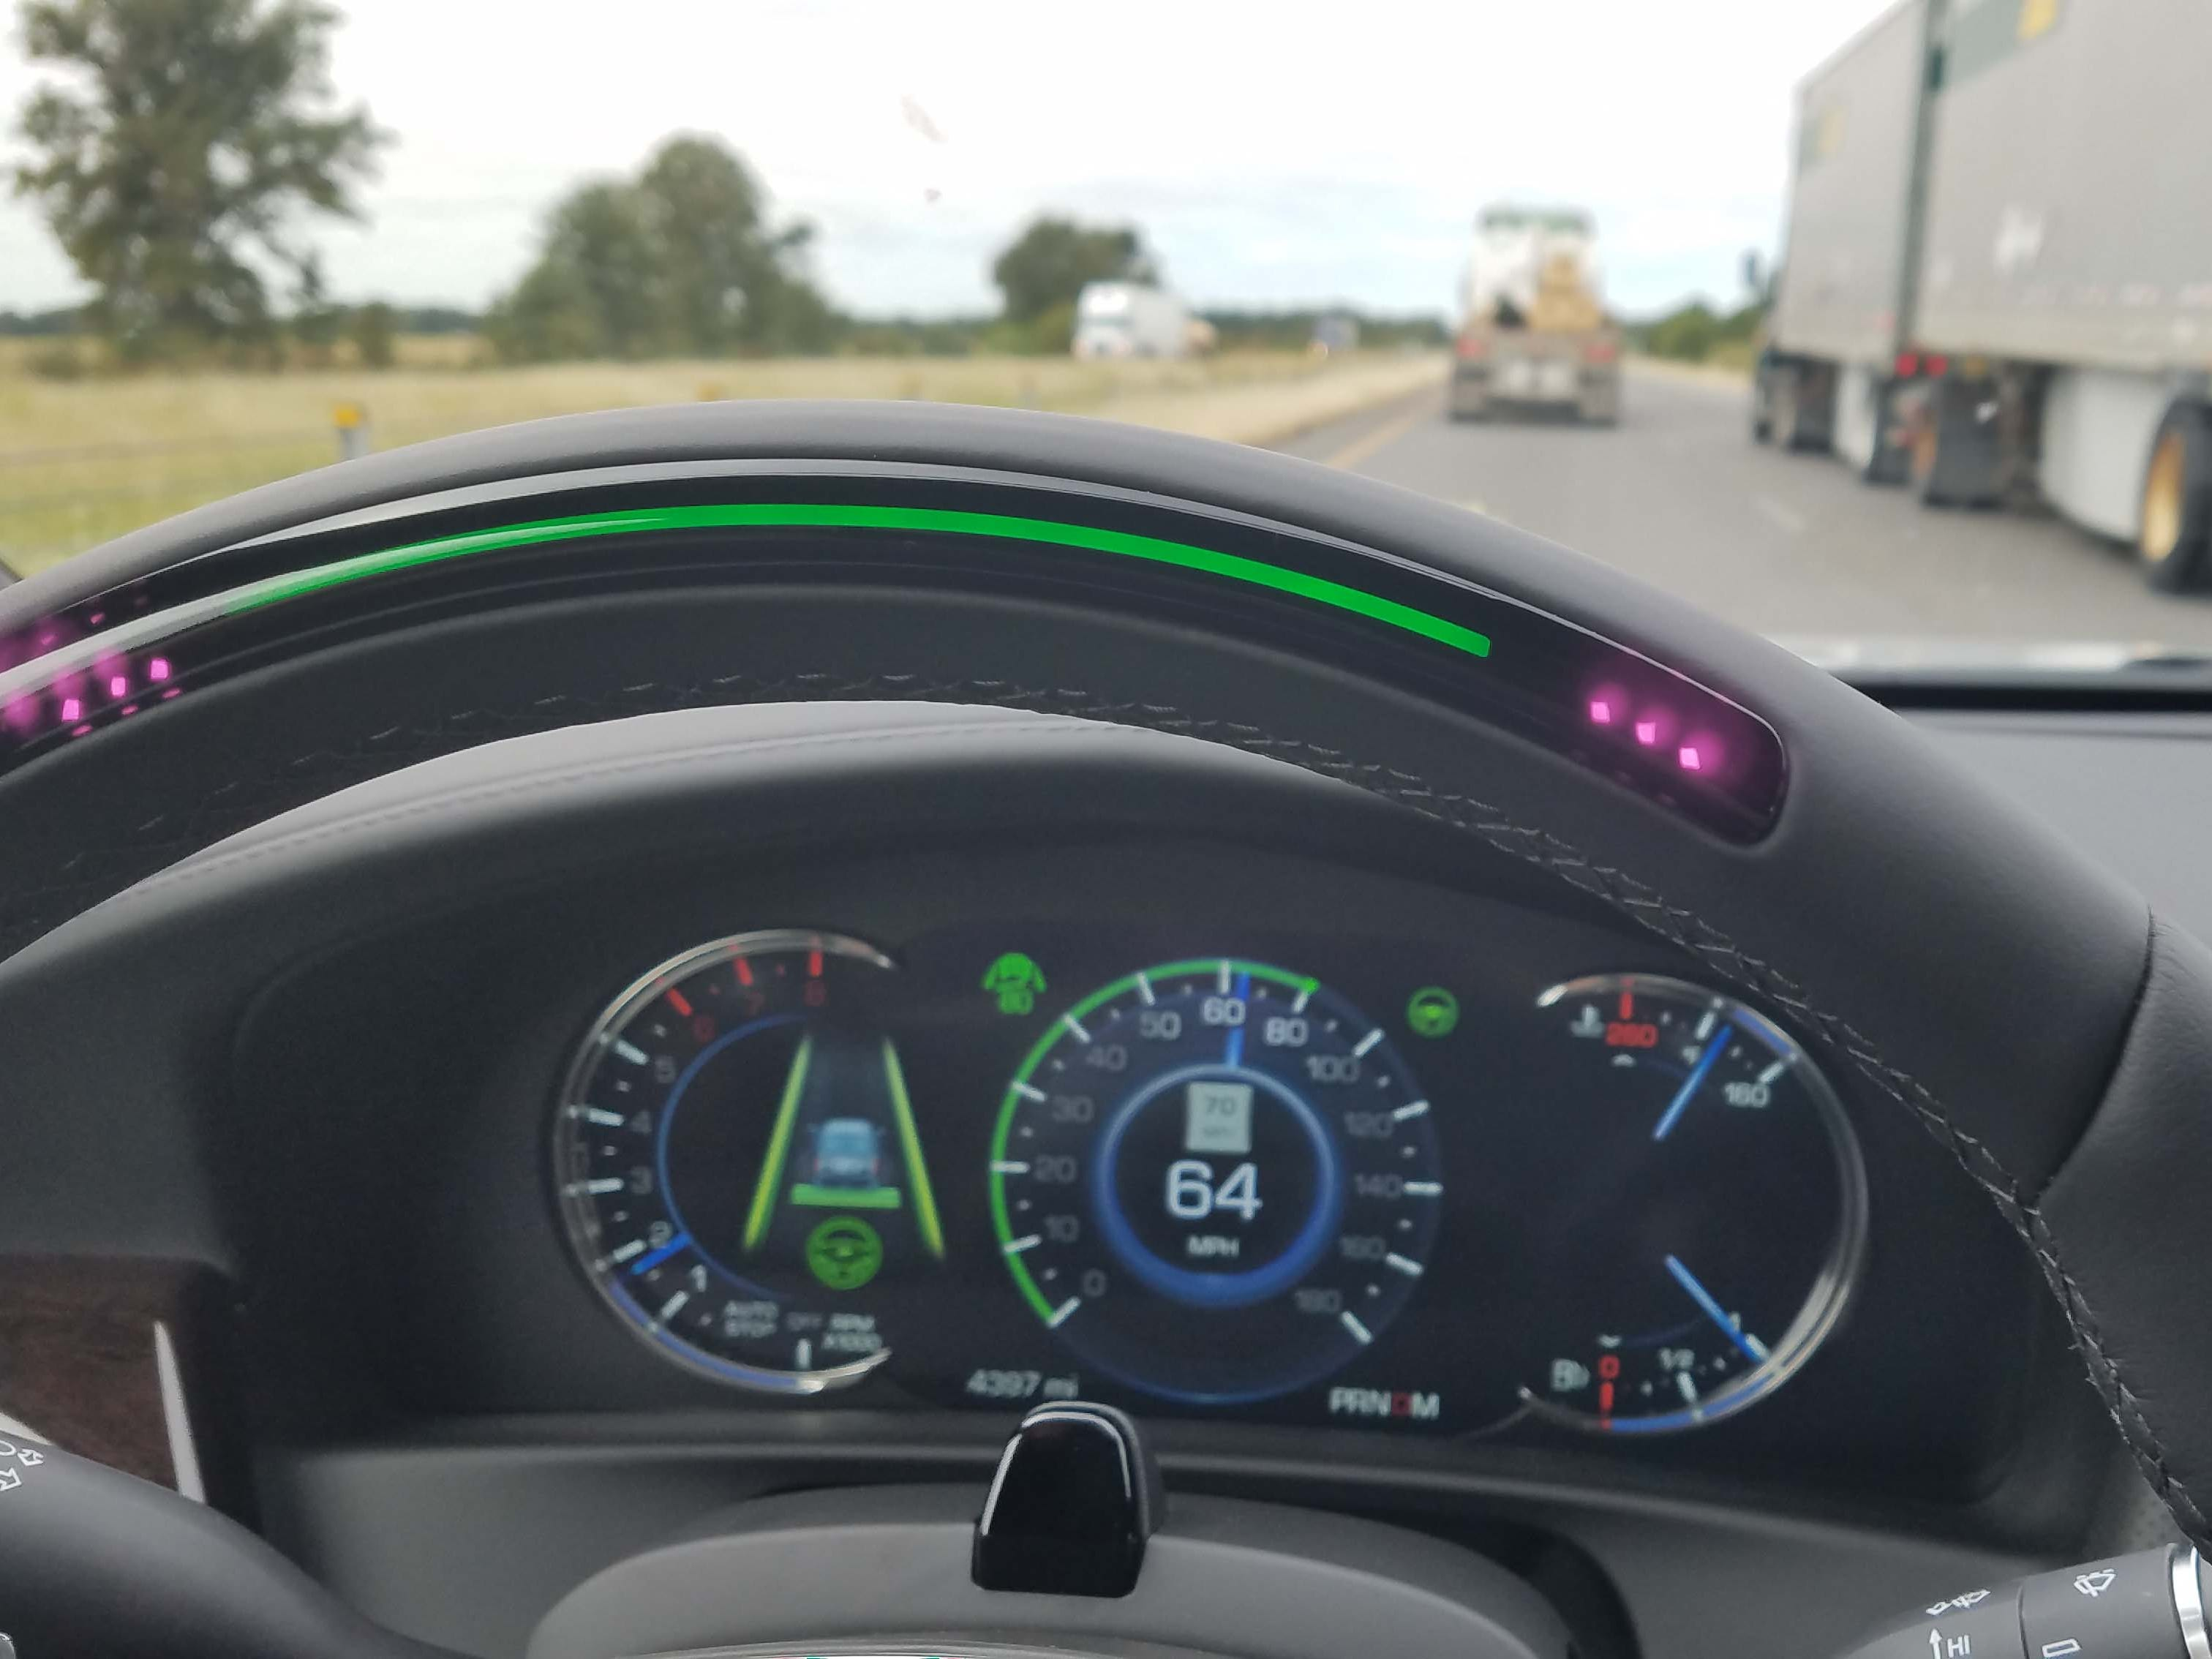 A green light atop the steering wheel indicates when SuperCruise is in operation. The light indicates blue as the driver centers the car upon entering a highway -- and it will turn red if the camera (mounted on top of the steering column) detects the driver is inattentive.